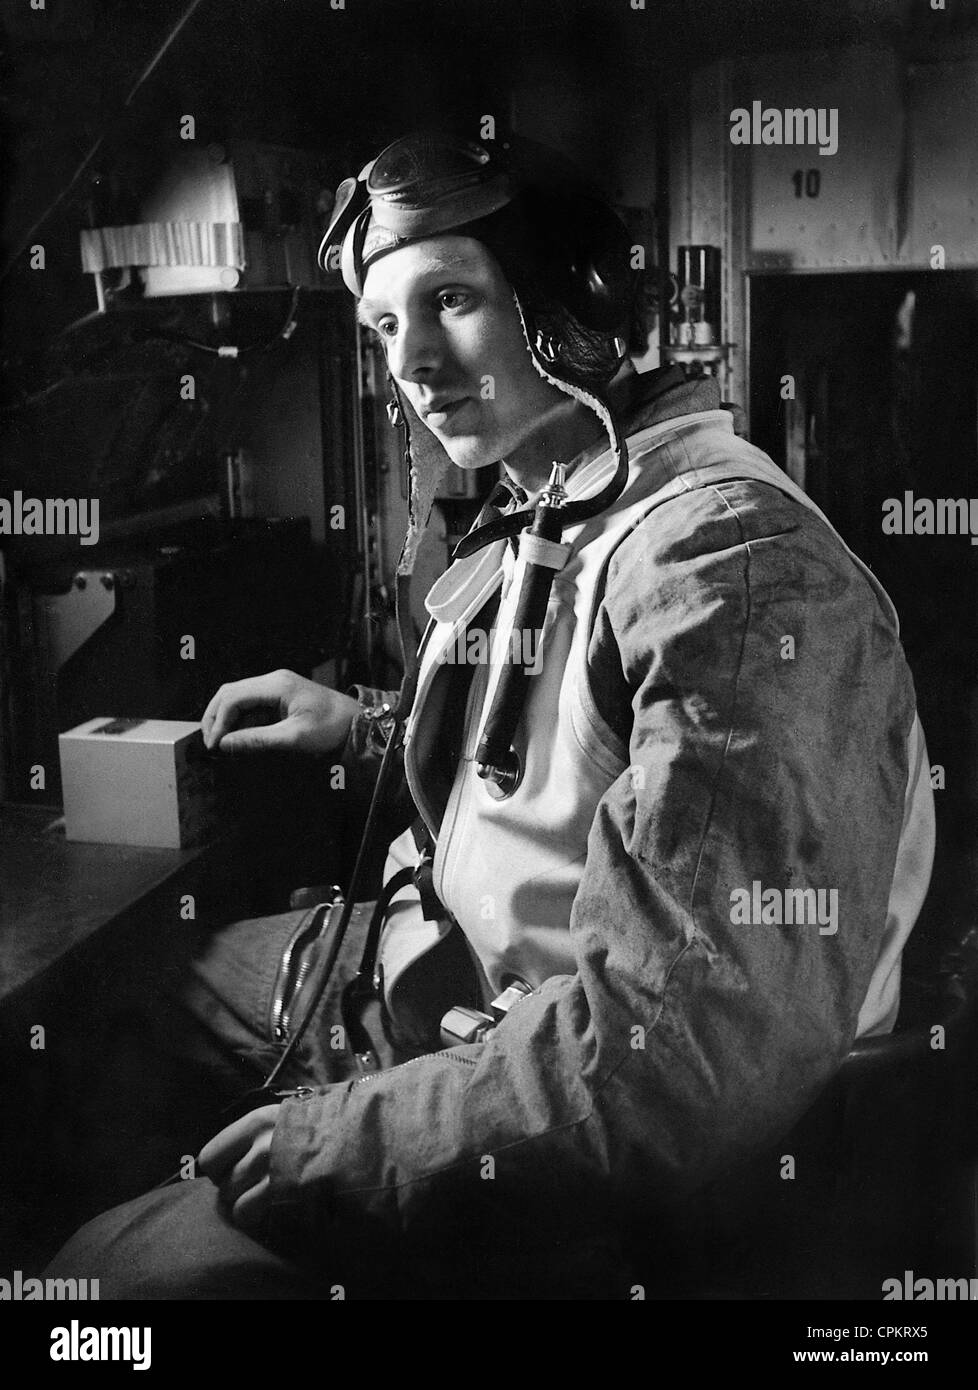 The gunner-radio operator with the IL-2, made 102 combat sorties